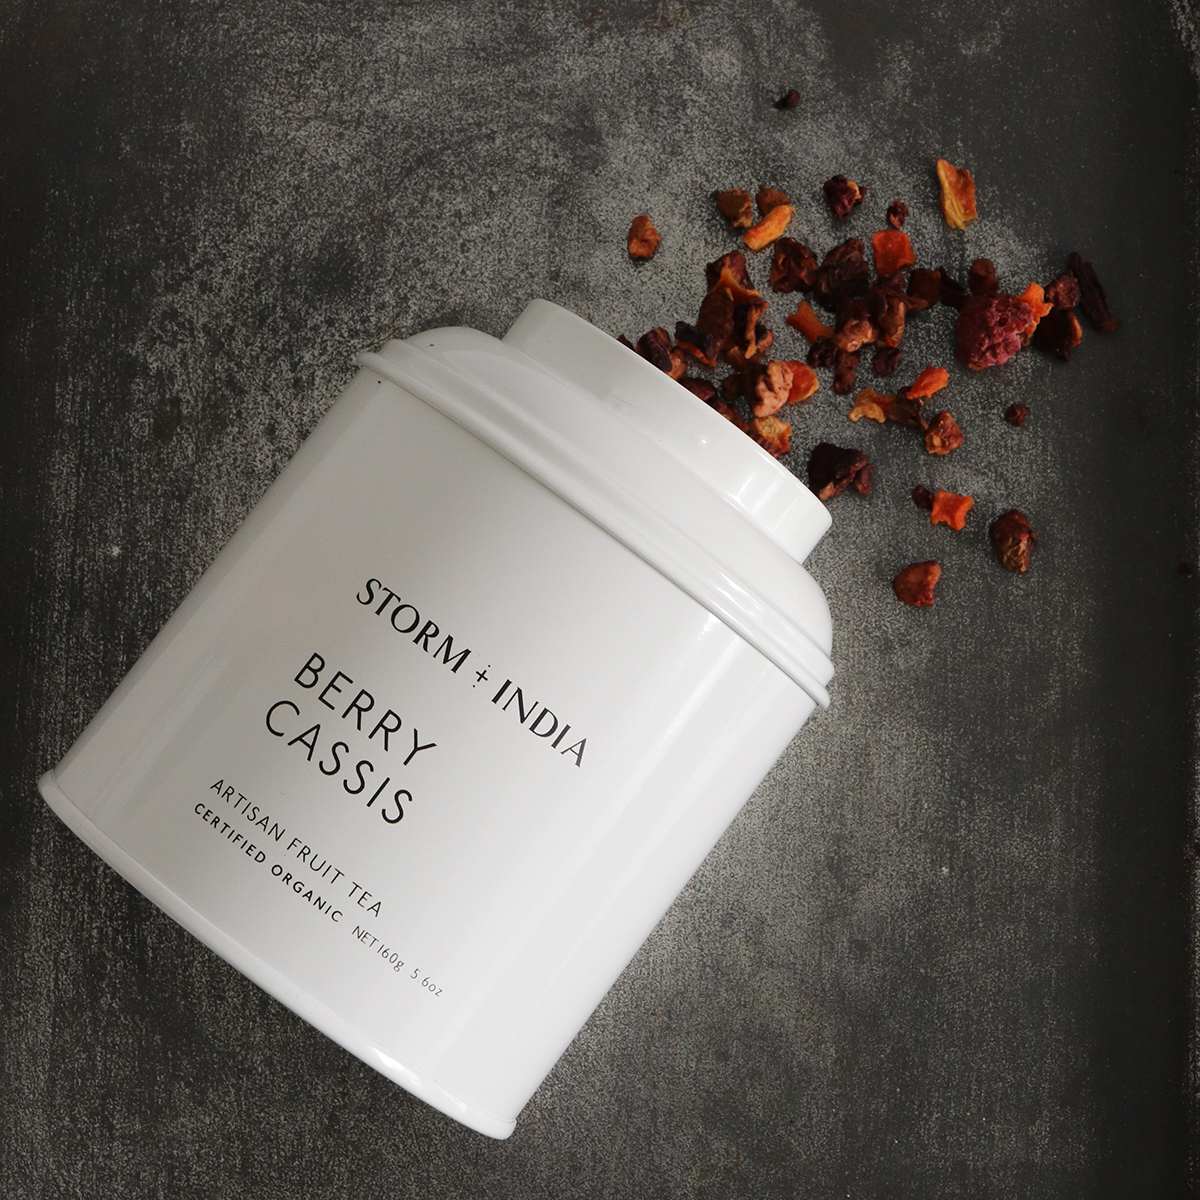 STORM + INDIA's Berry Cassis Tea